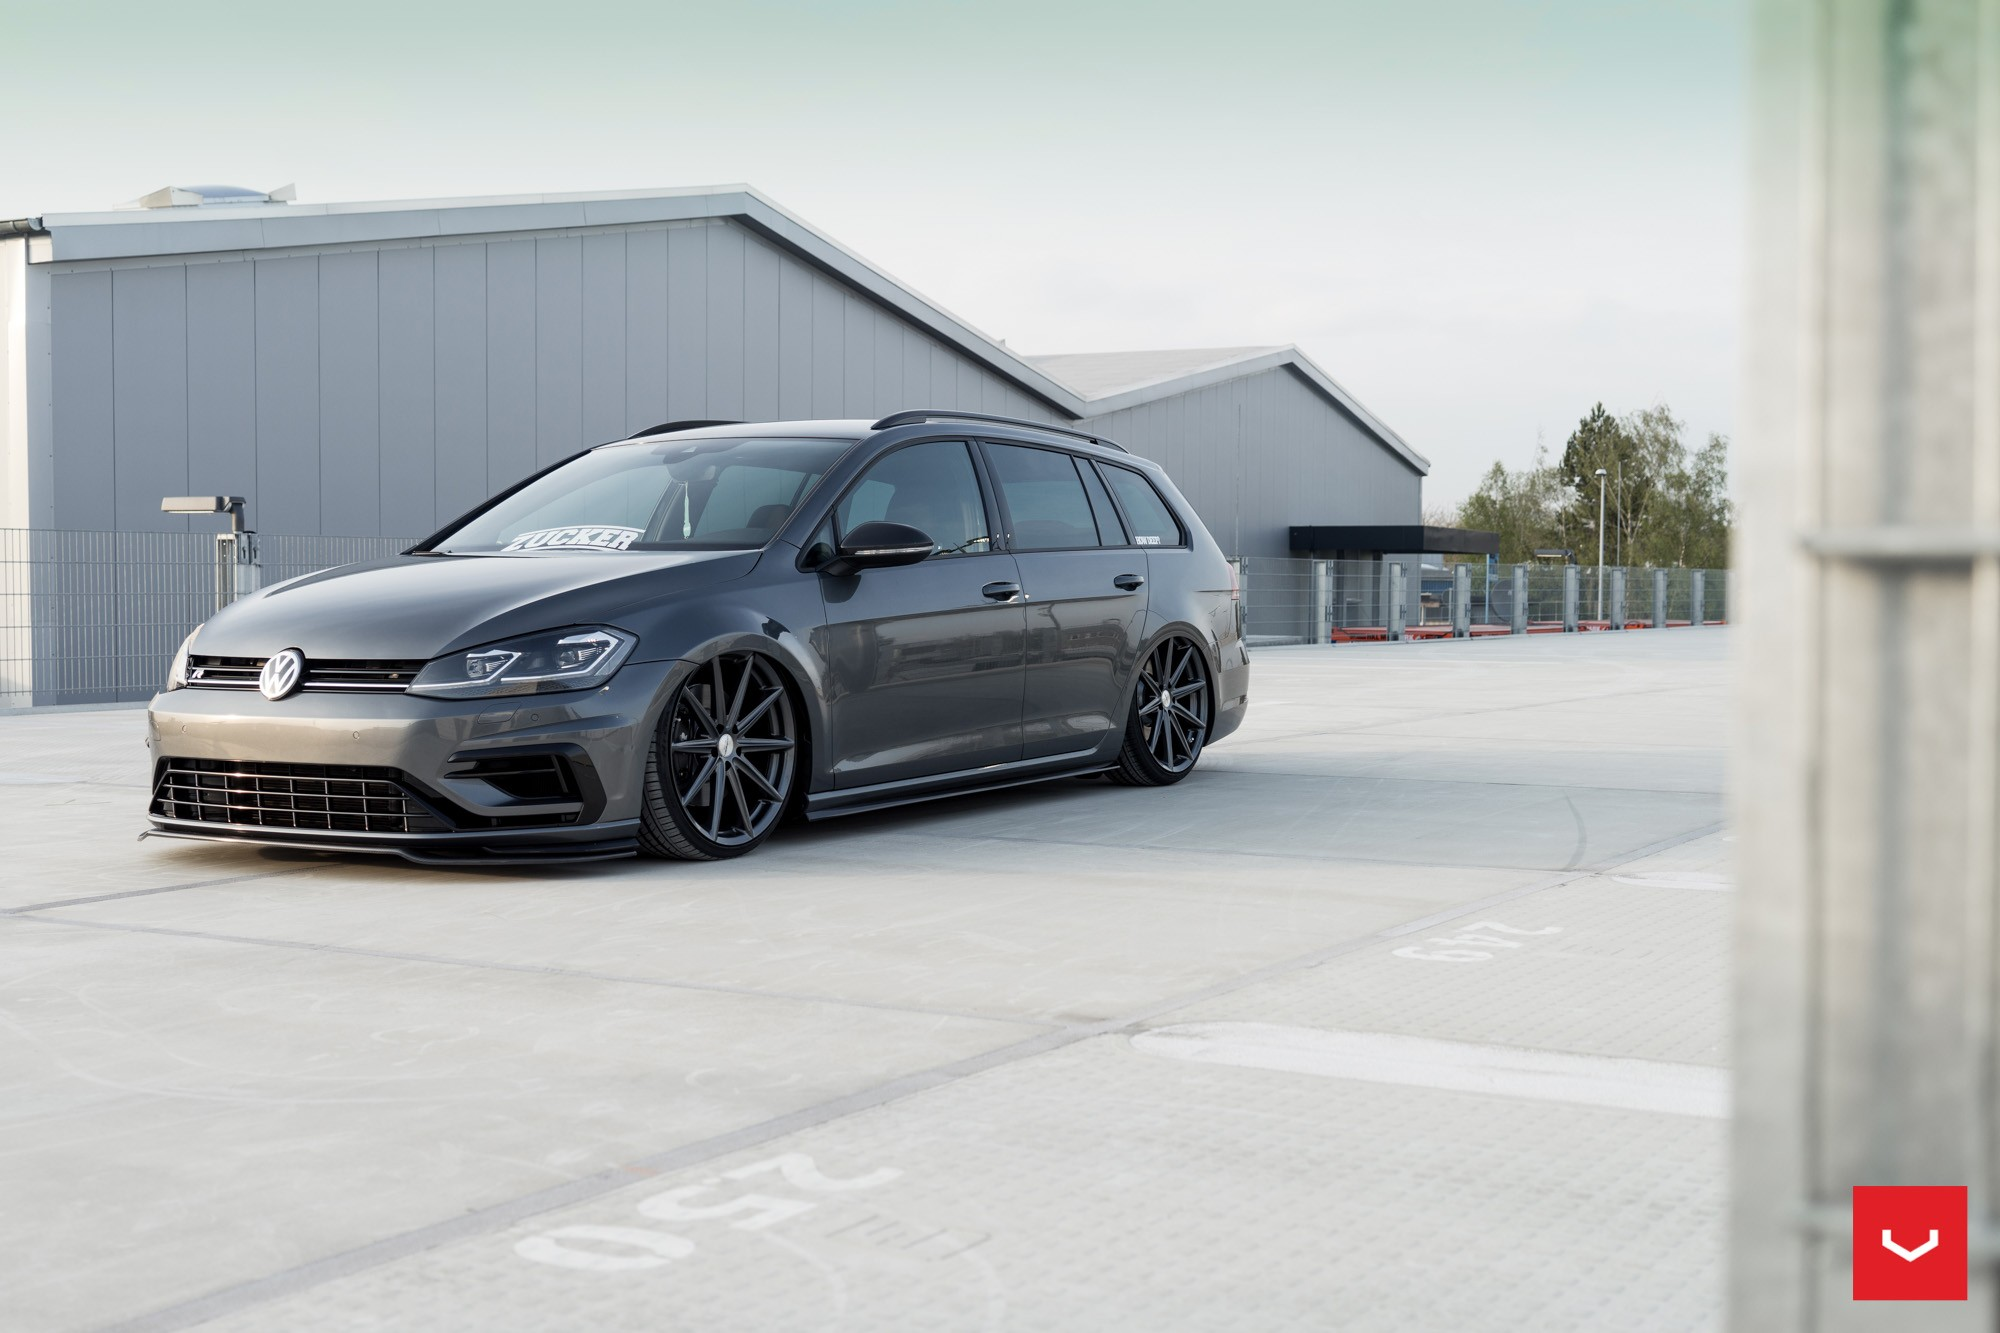 2017 Golf R Variant Gets Stanced On Vossen Wheels For